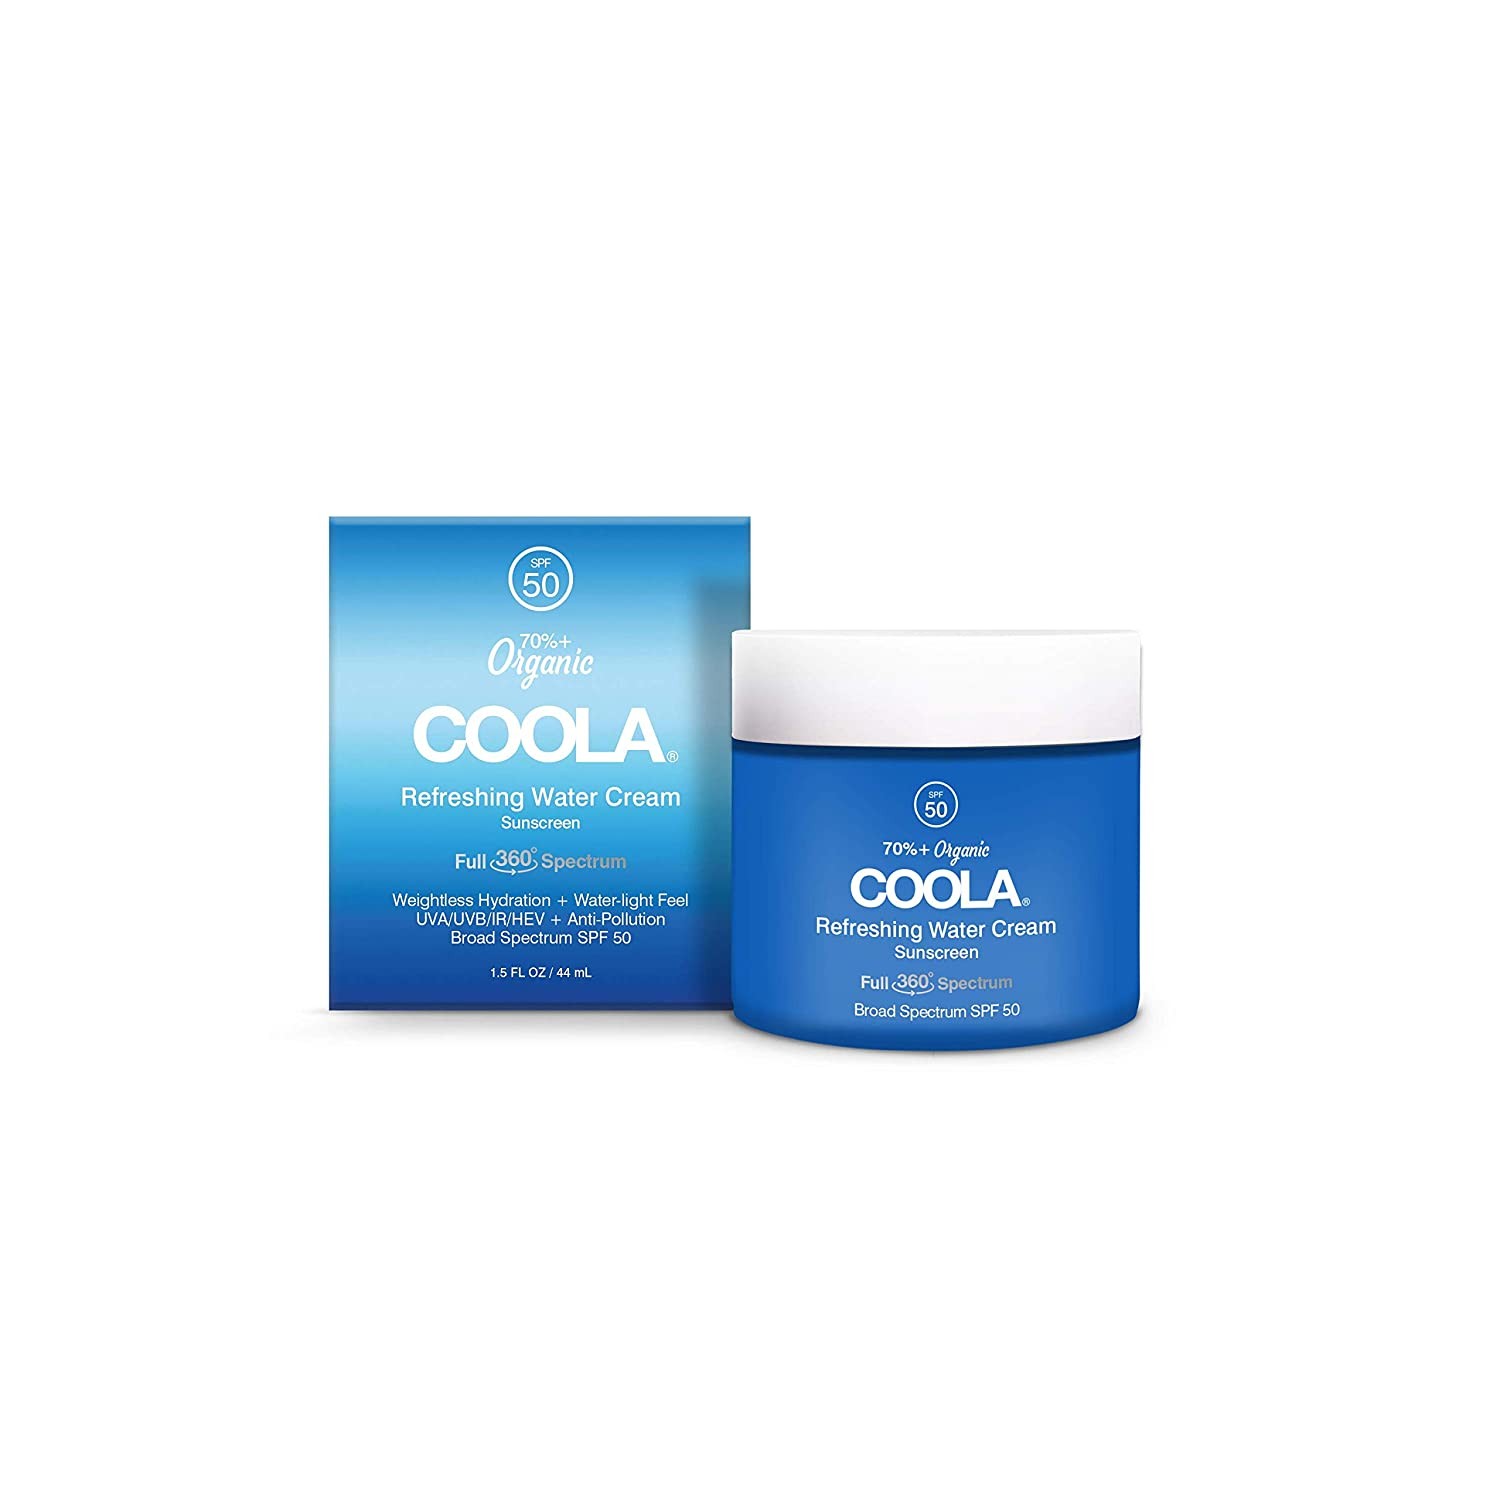 COOLA Organic Refreshing Water Cream Face Sunscreen, Full Spectrum Skin Care with Coconut & Aloe Water, Broad Spectrum SPF 50, Reef Safe, 1.5 Fl Oz